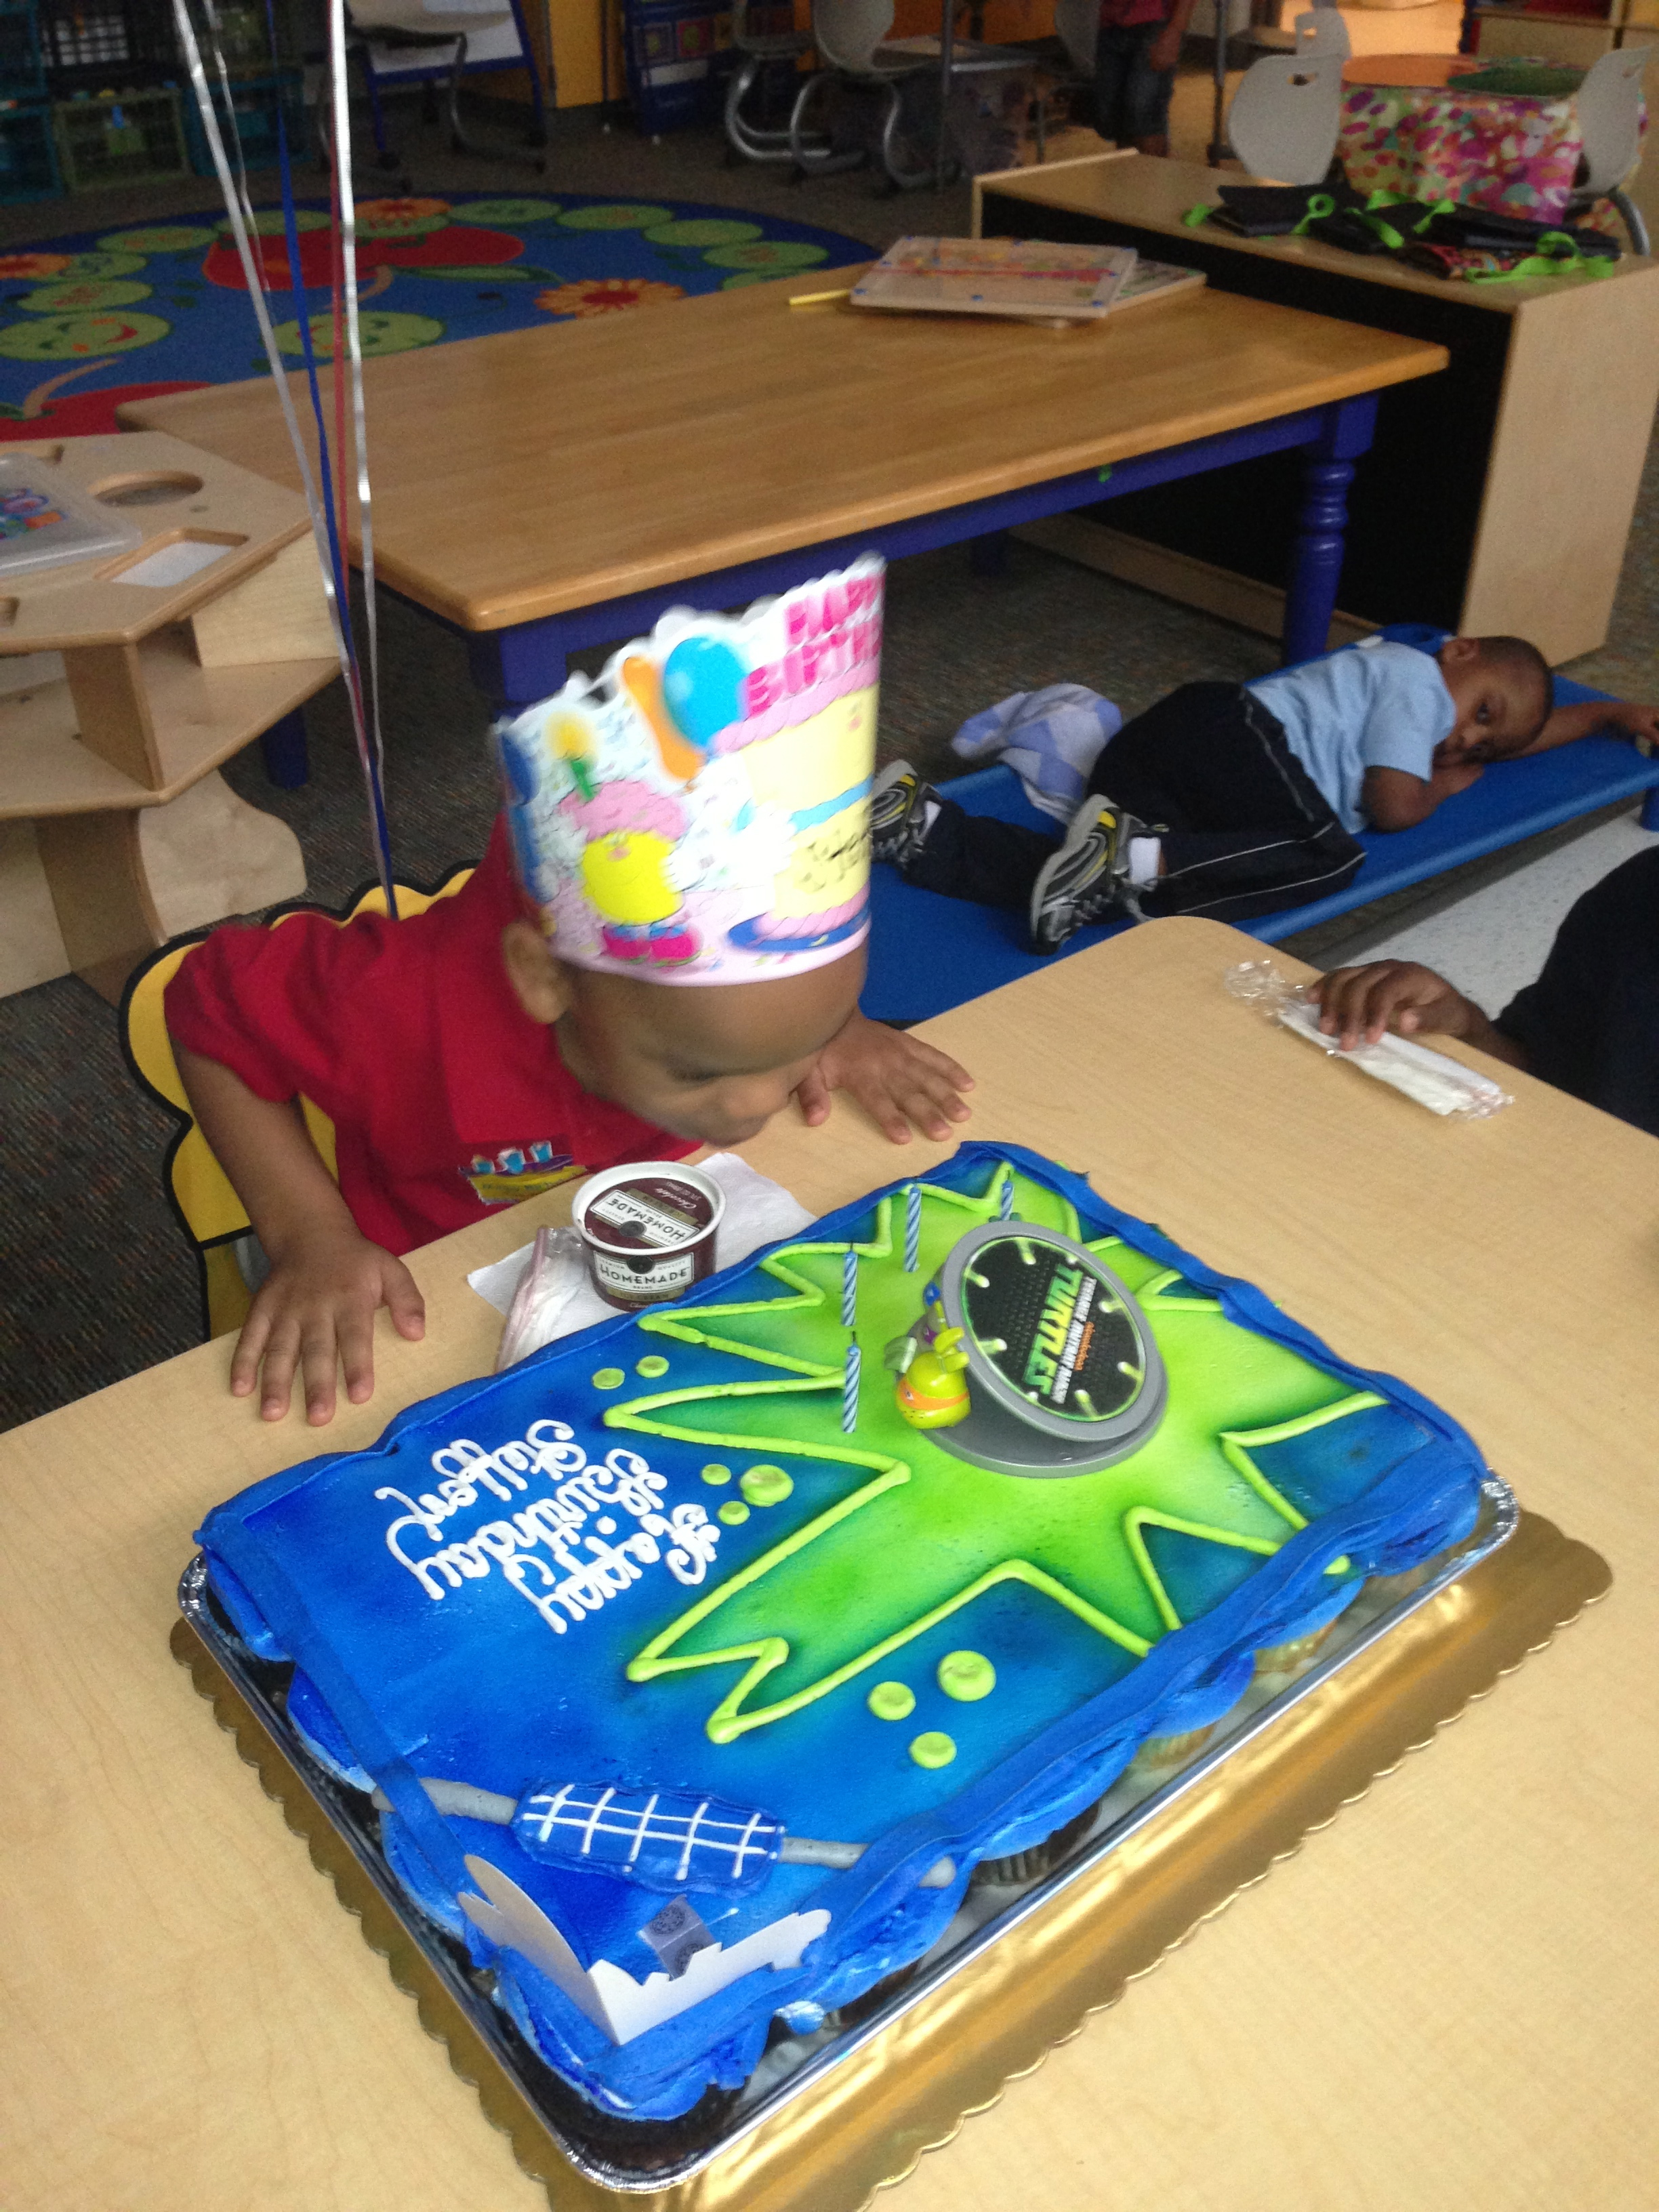 ... with a Teenage Mutant Ninja Turtle Cake Learning to Hit the Curve